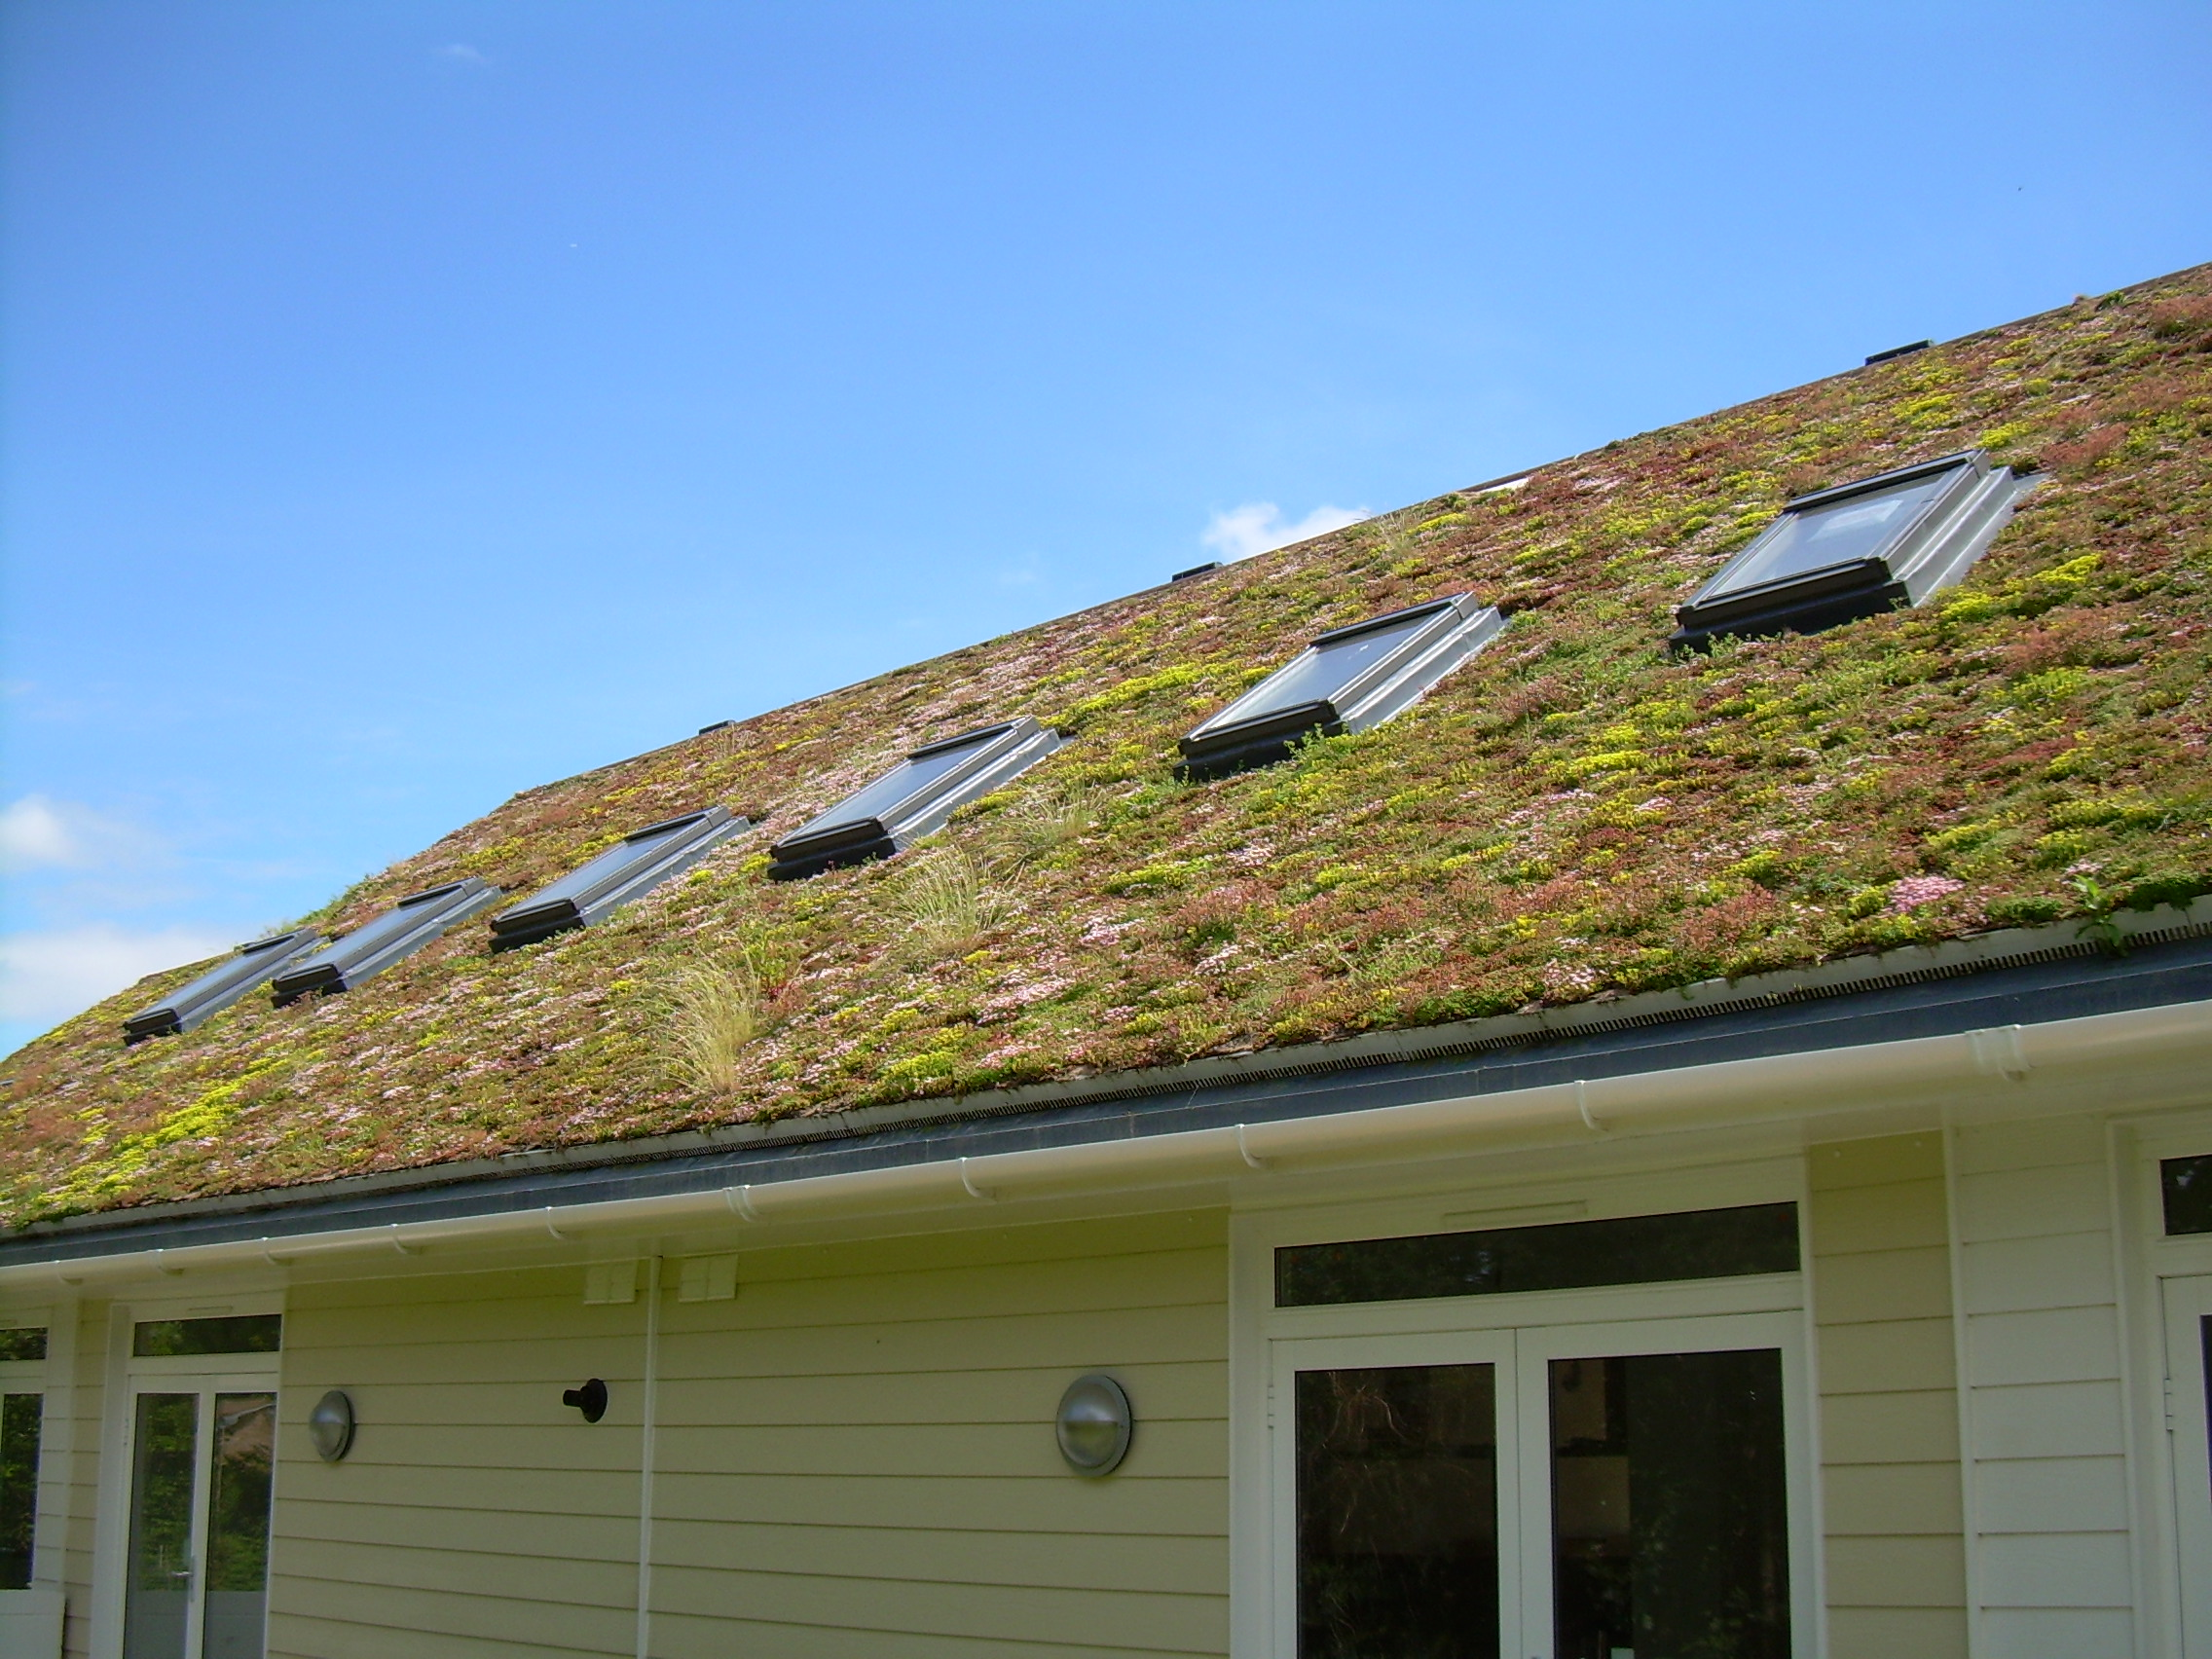 Green Roofs S Amp P Roofing